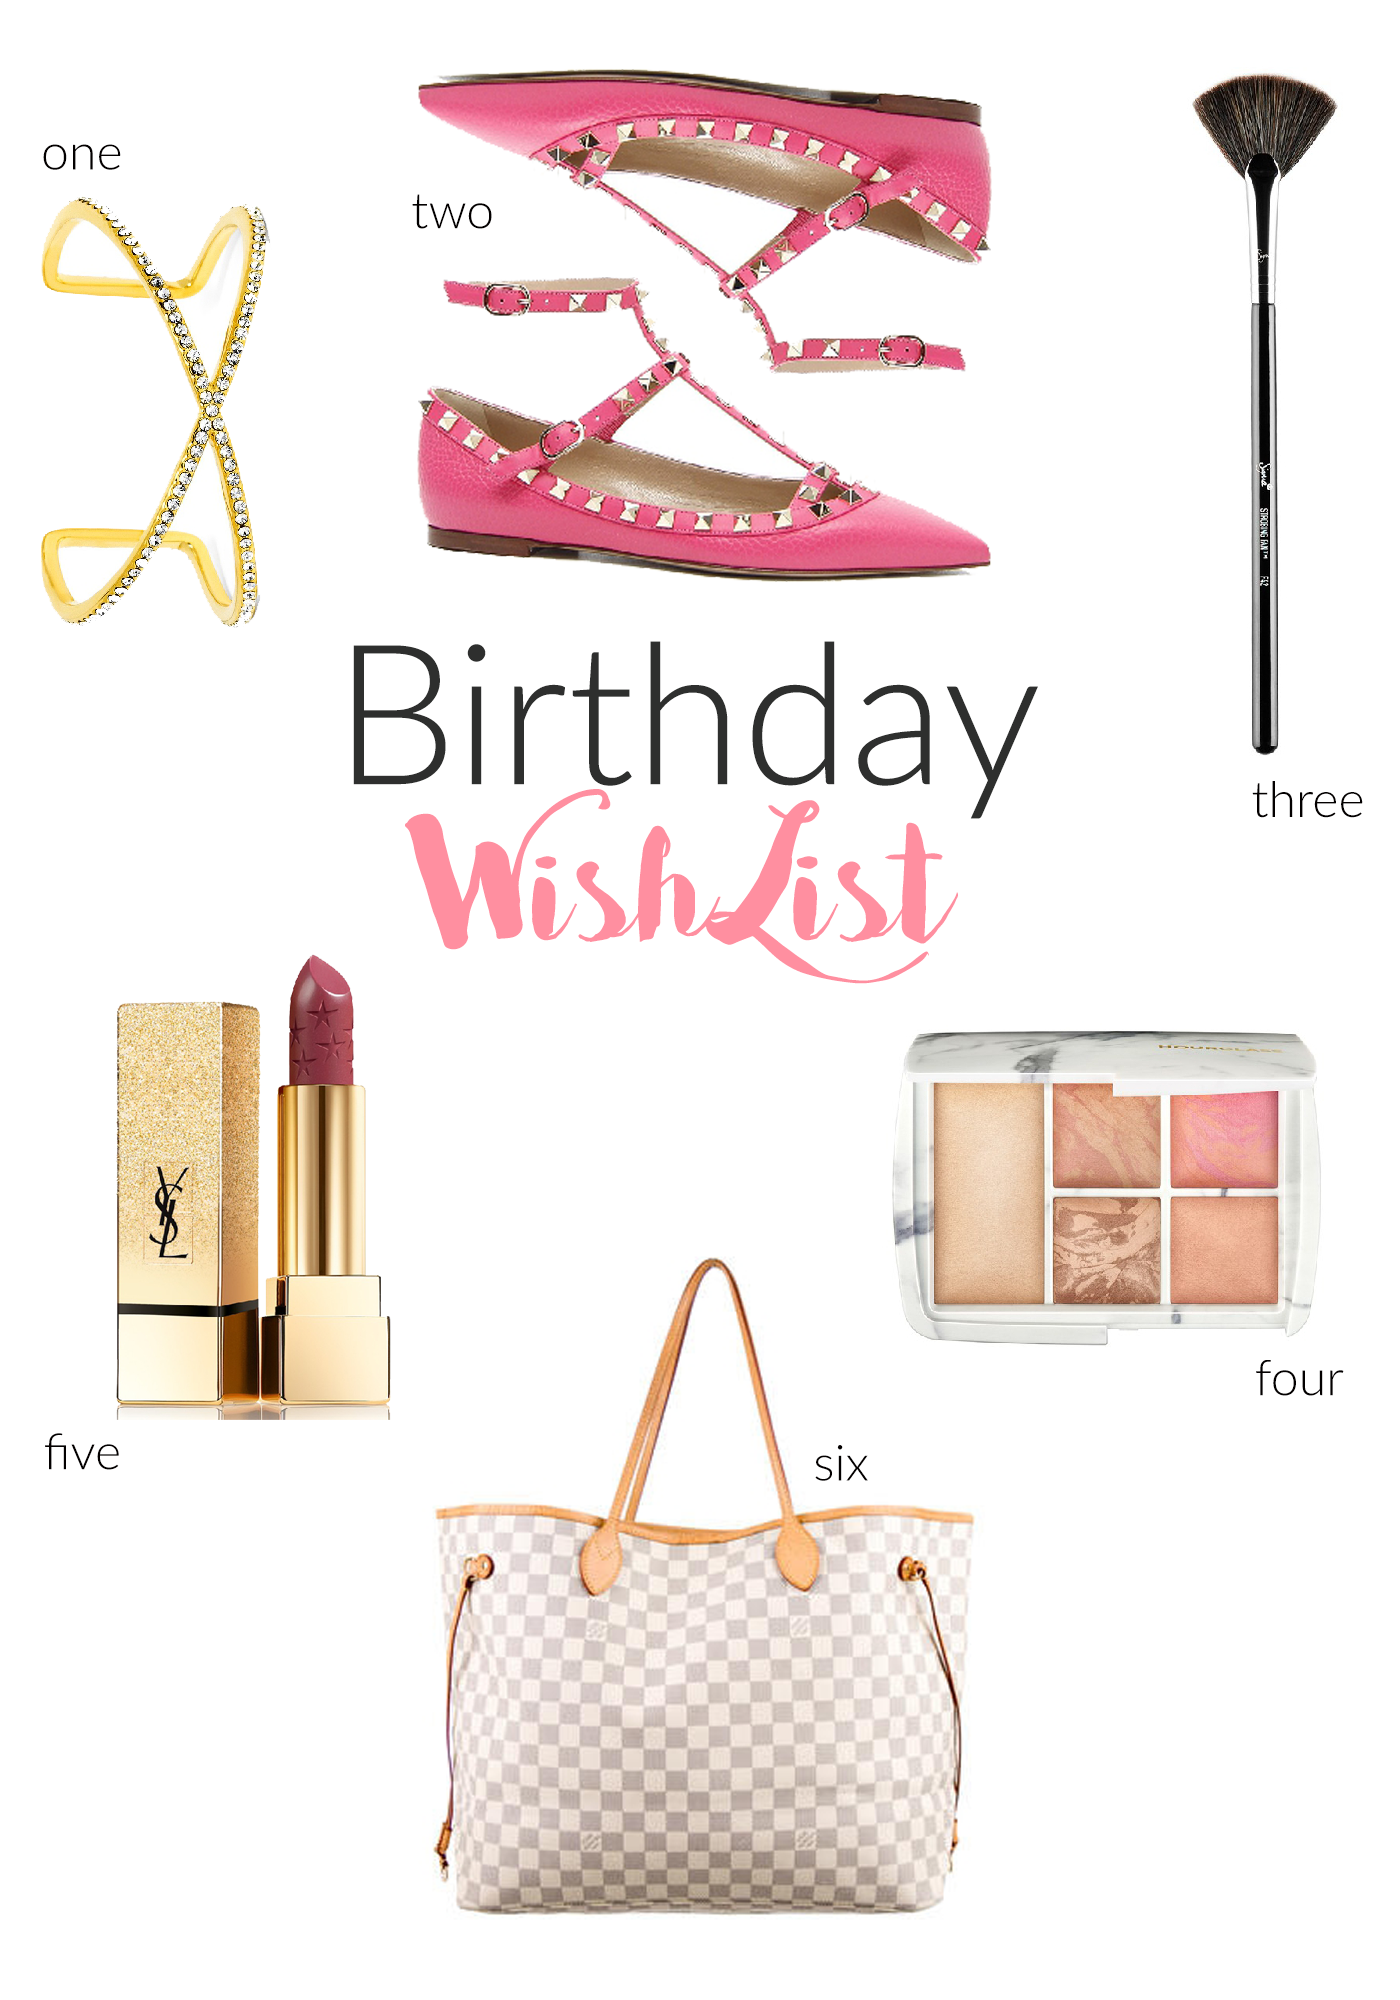 Birthday Wish List Gift Ideas For A 23 Year Old Women